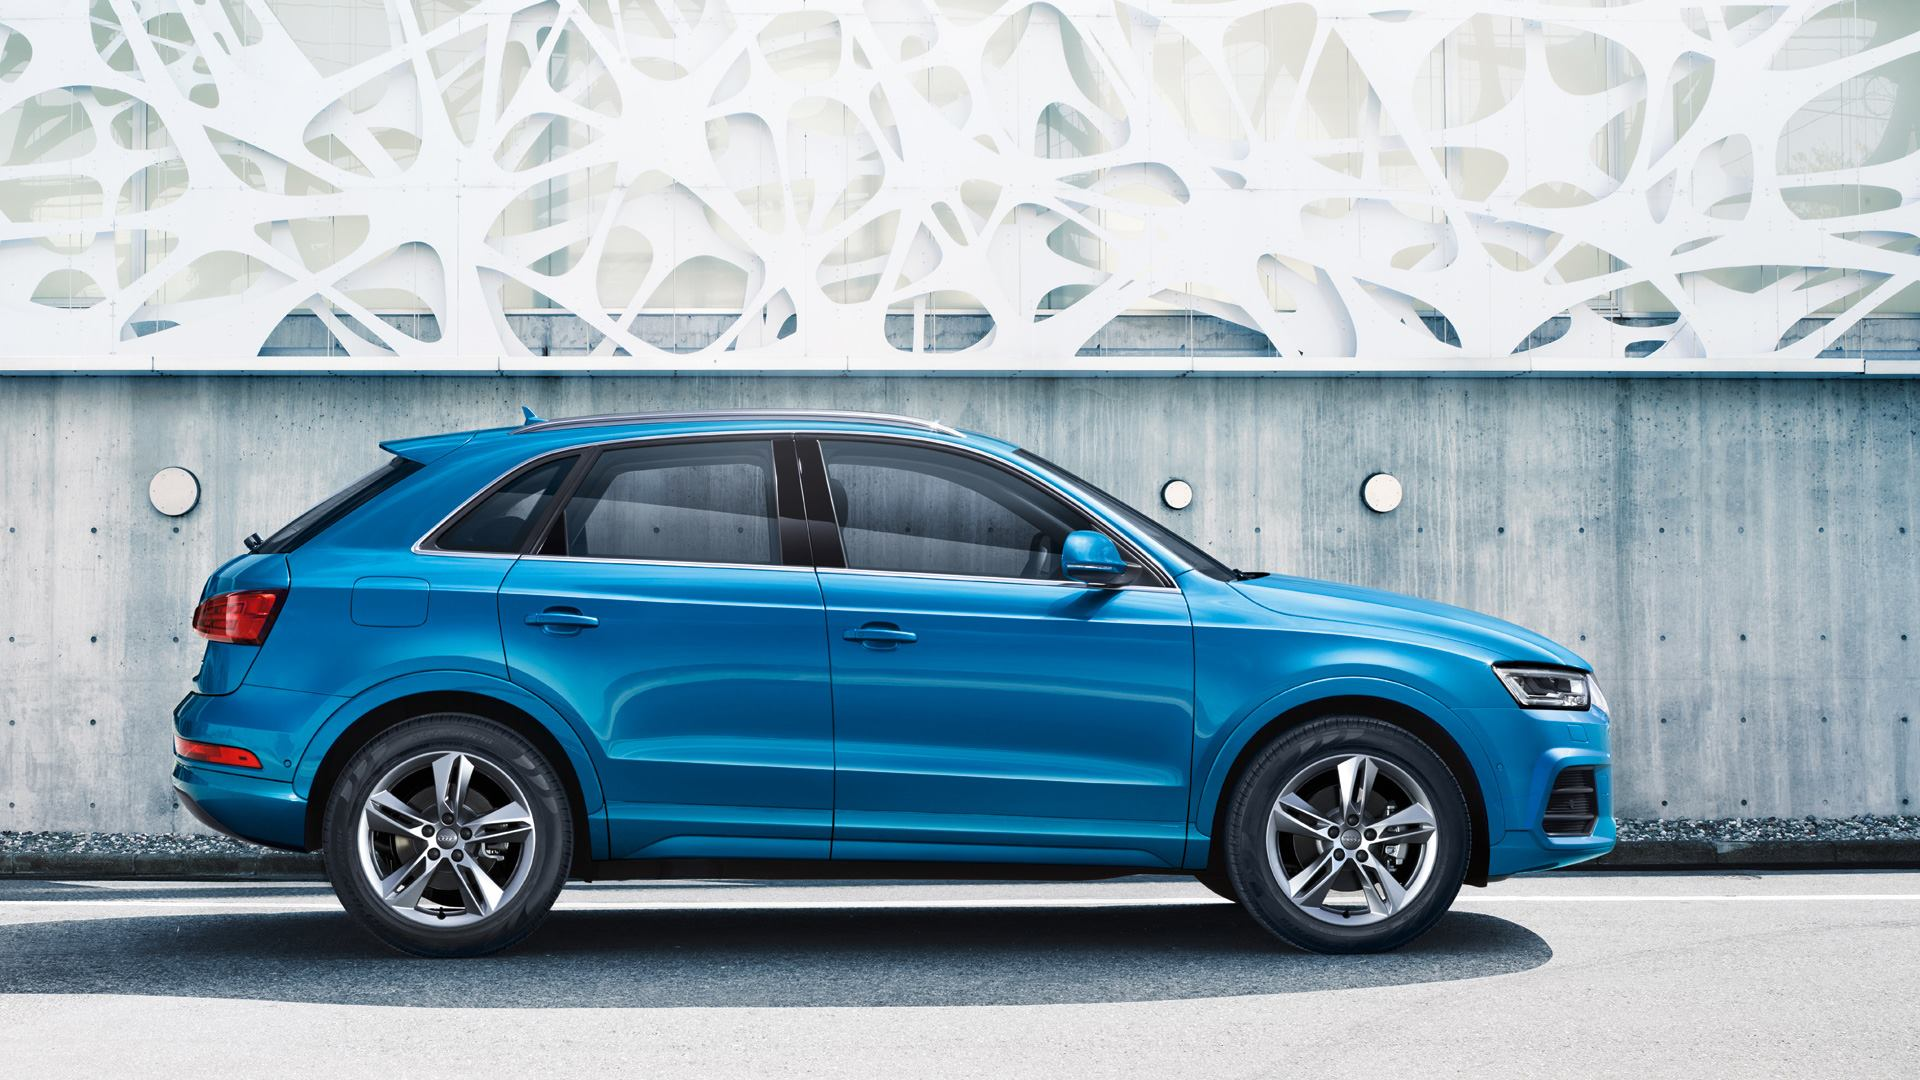 2015 Audi Q3 Facelift Revealed with Fresh Looks and Engines [Video] - autoevolution